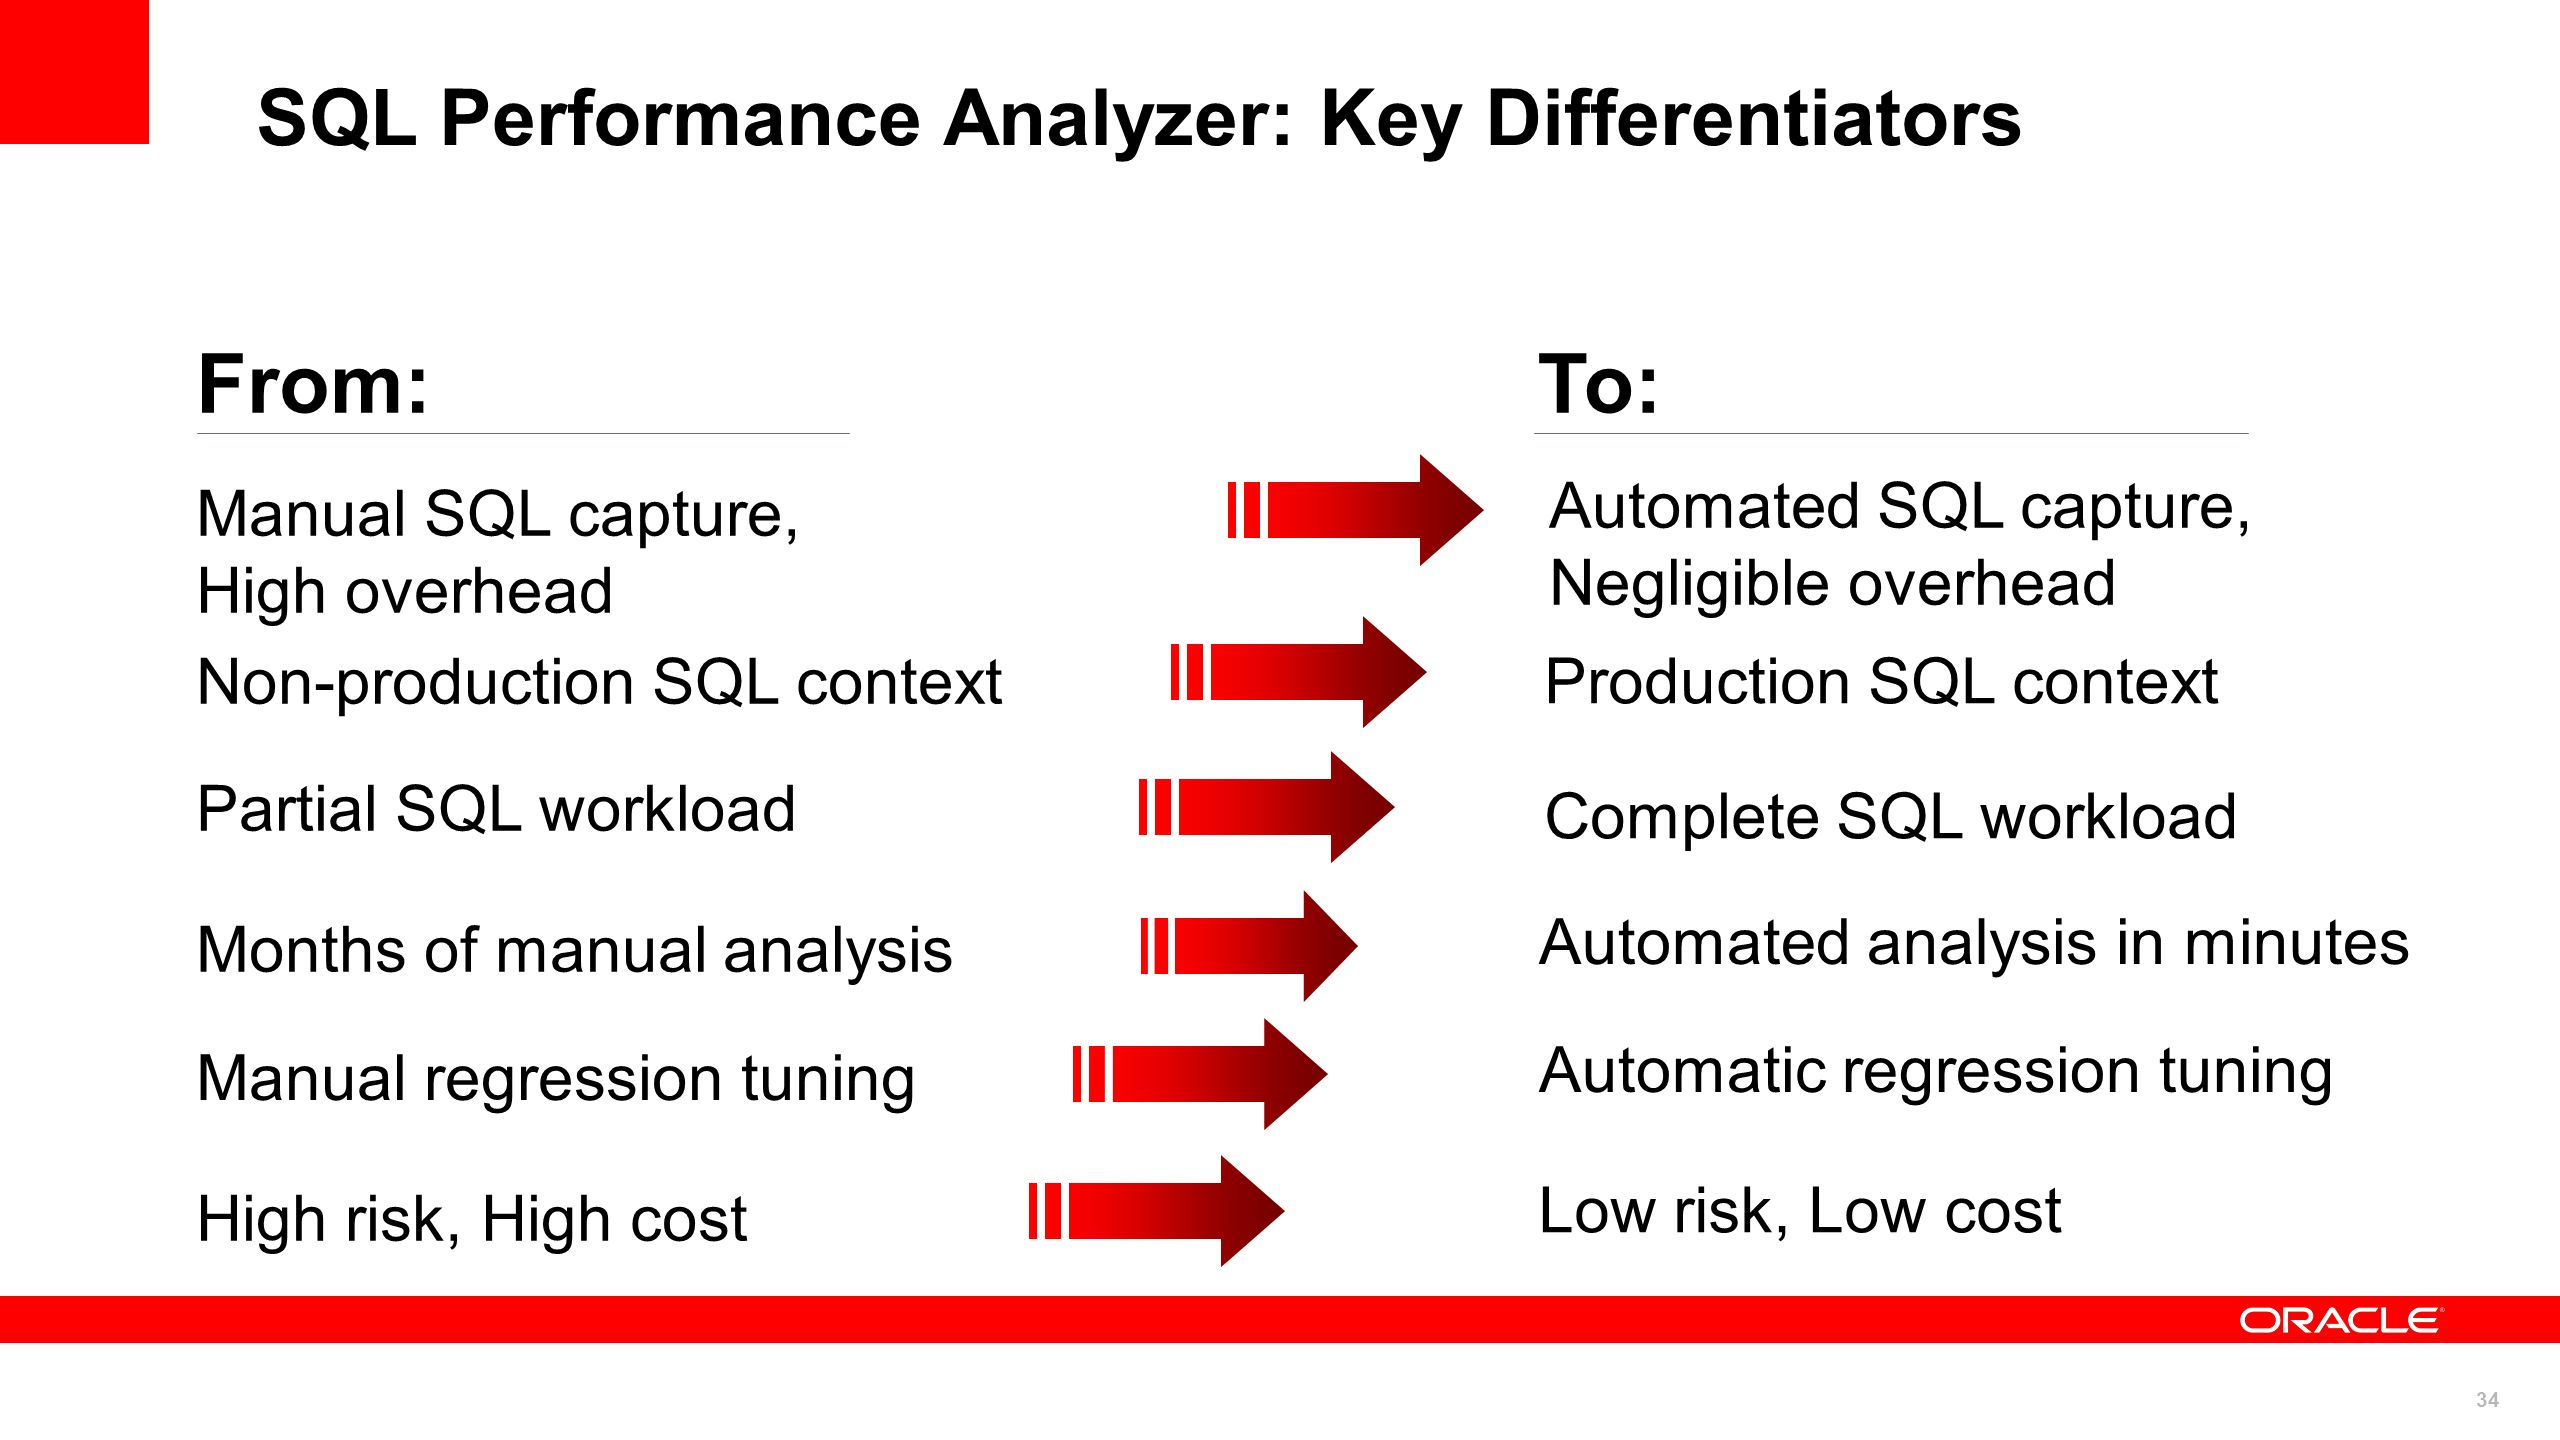 SQL Performance Analyzer: Key Differentiators